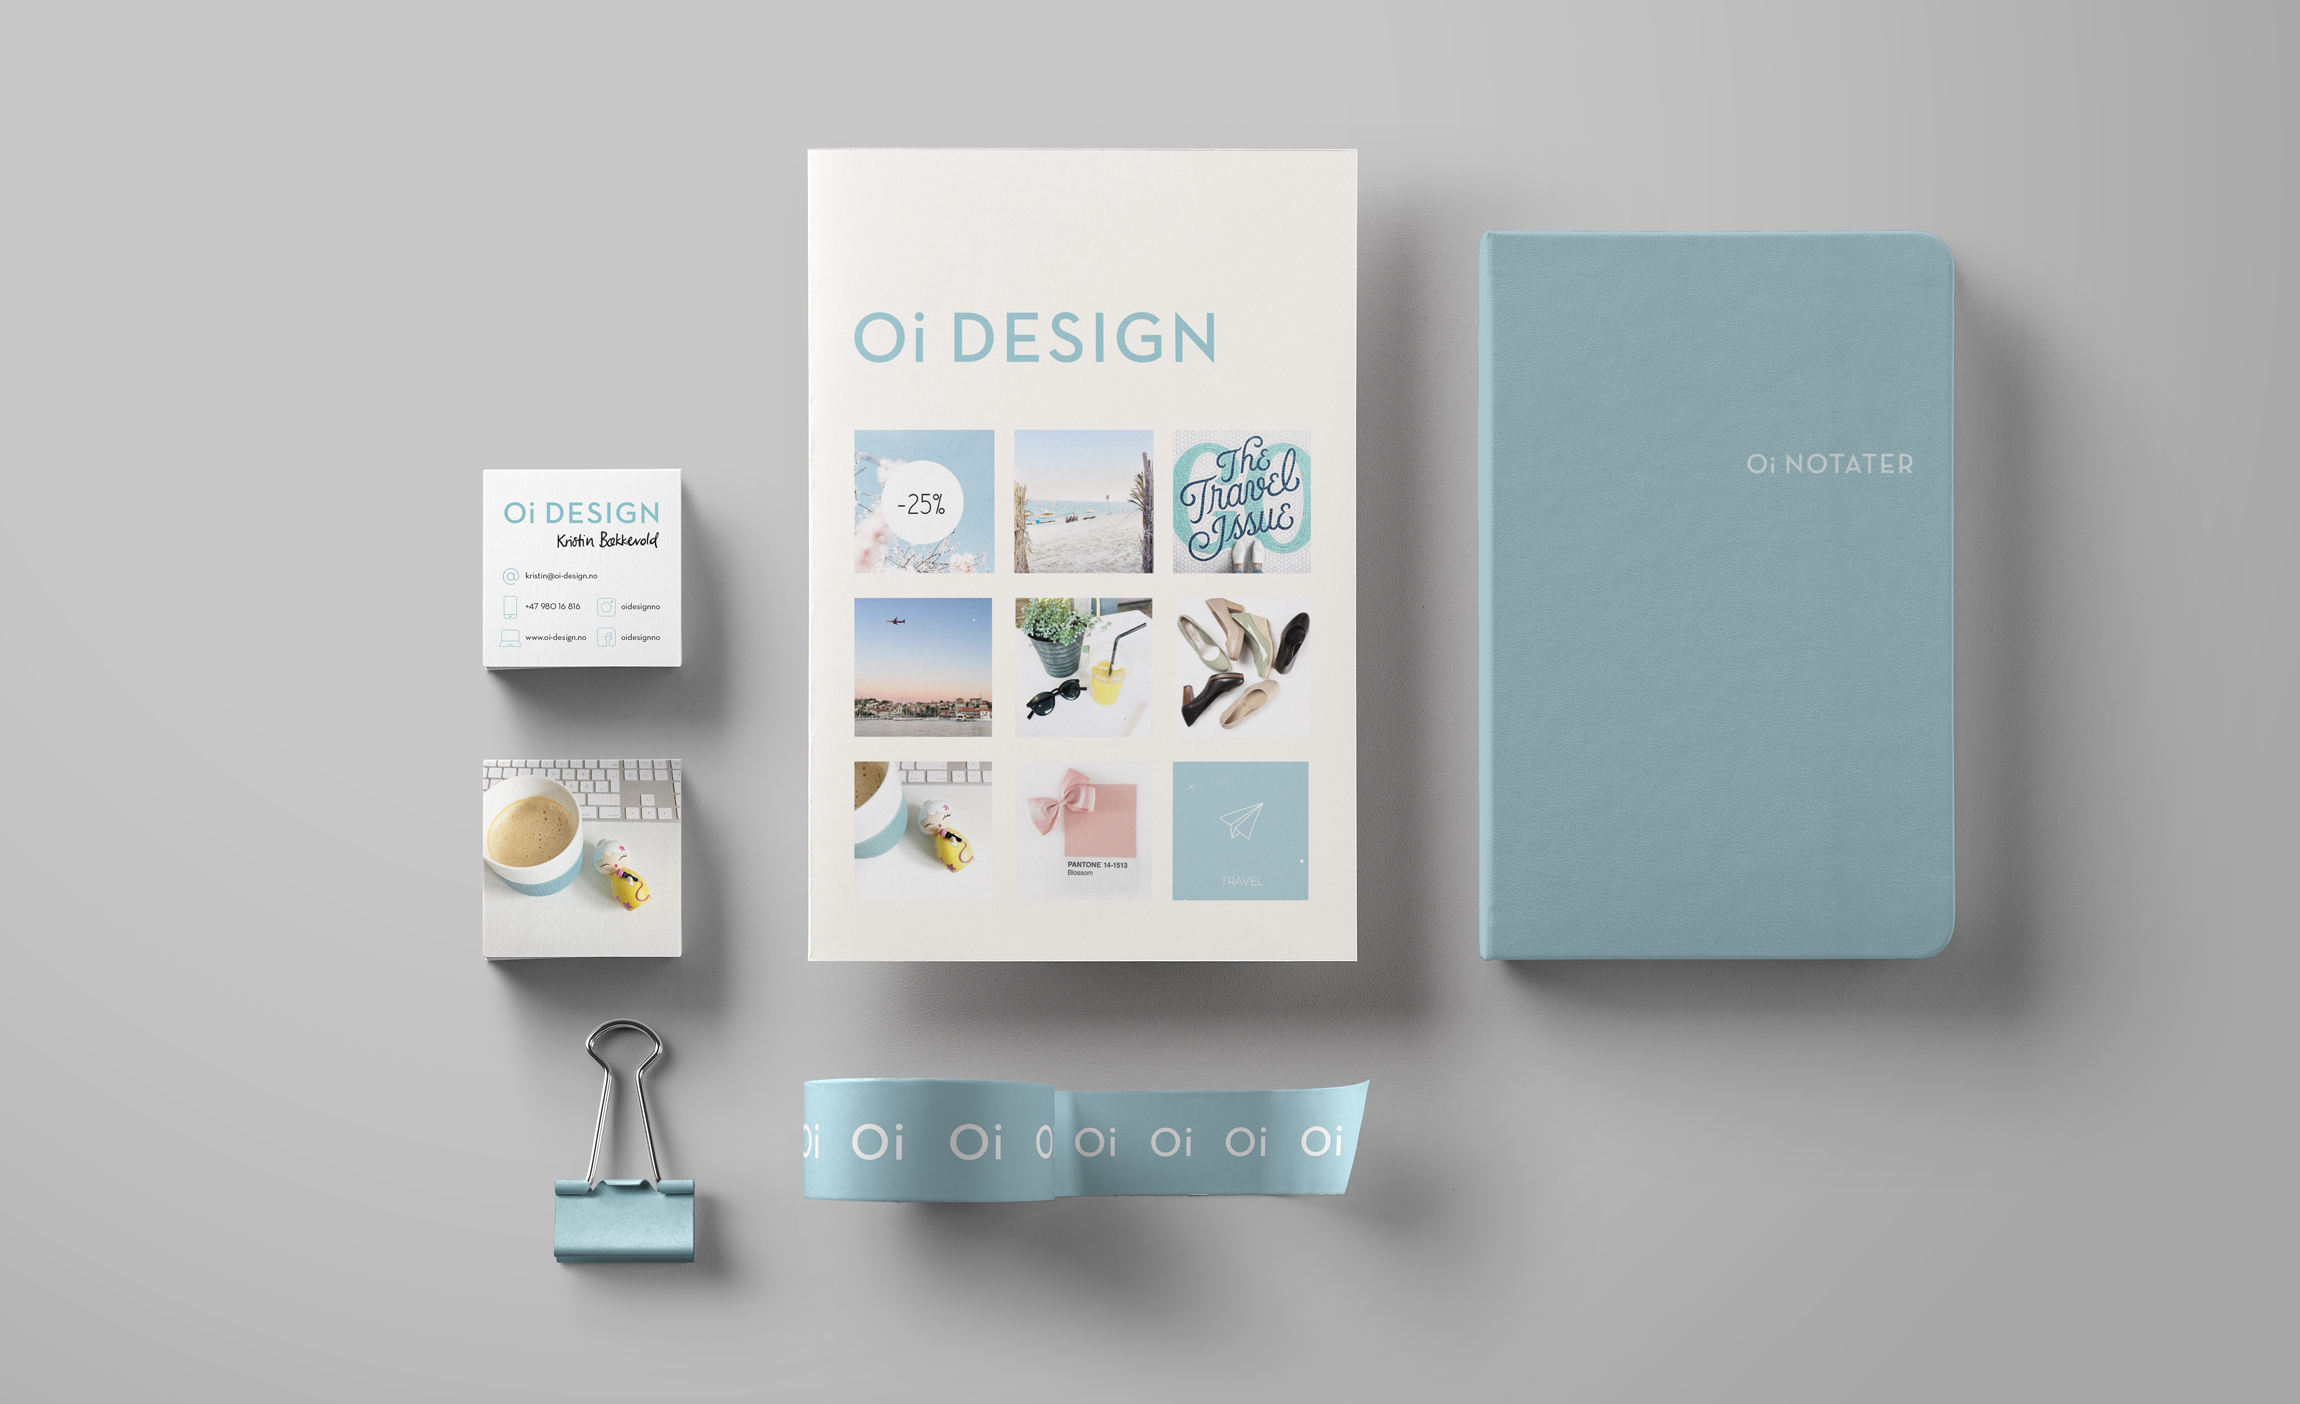 OI-Basic-Stationery-Branding-Mockup-Vol12.jpg